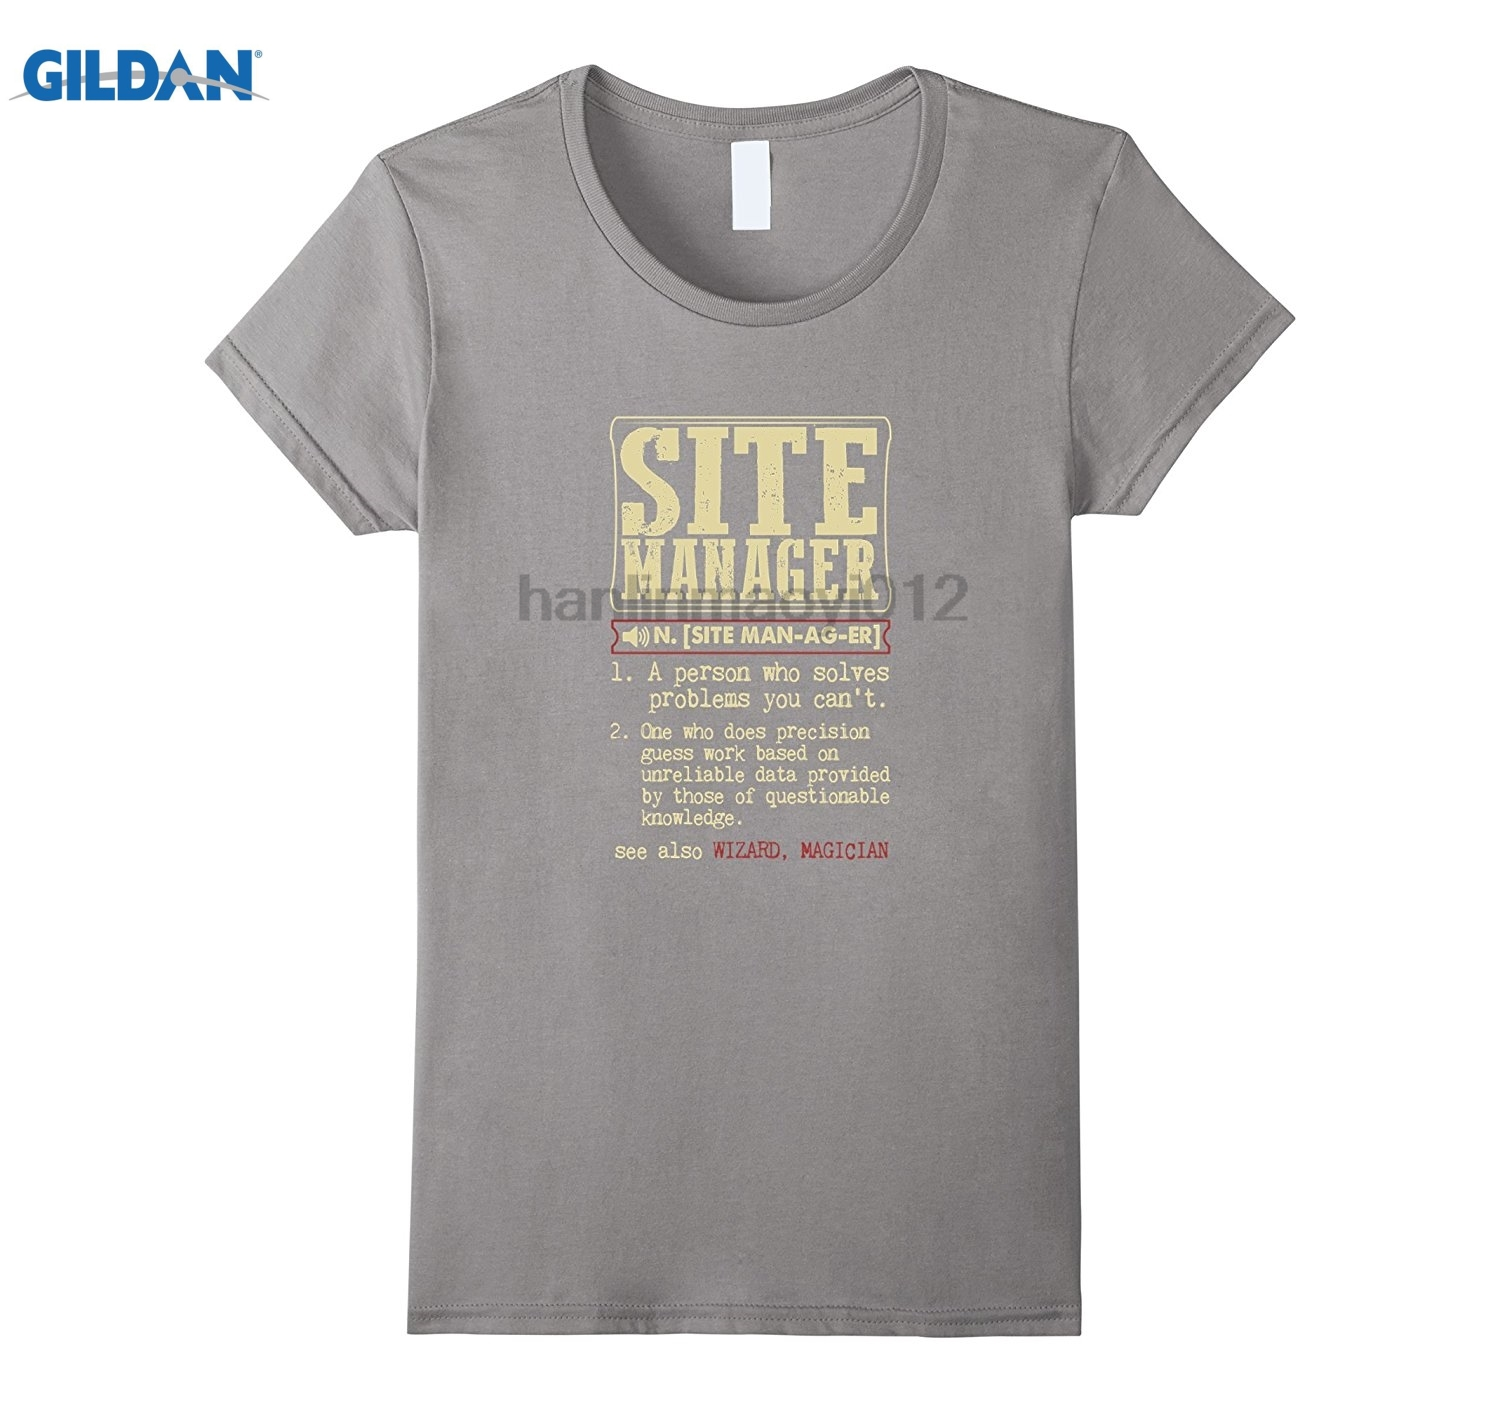 GILDAN Site Manager Dictionary Term T-Shirt Dress female T-shirt